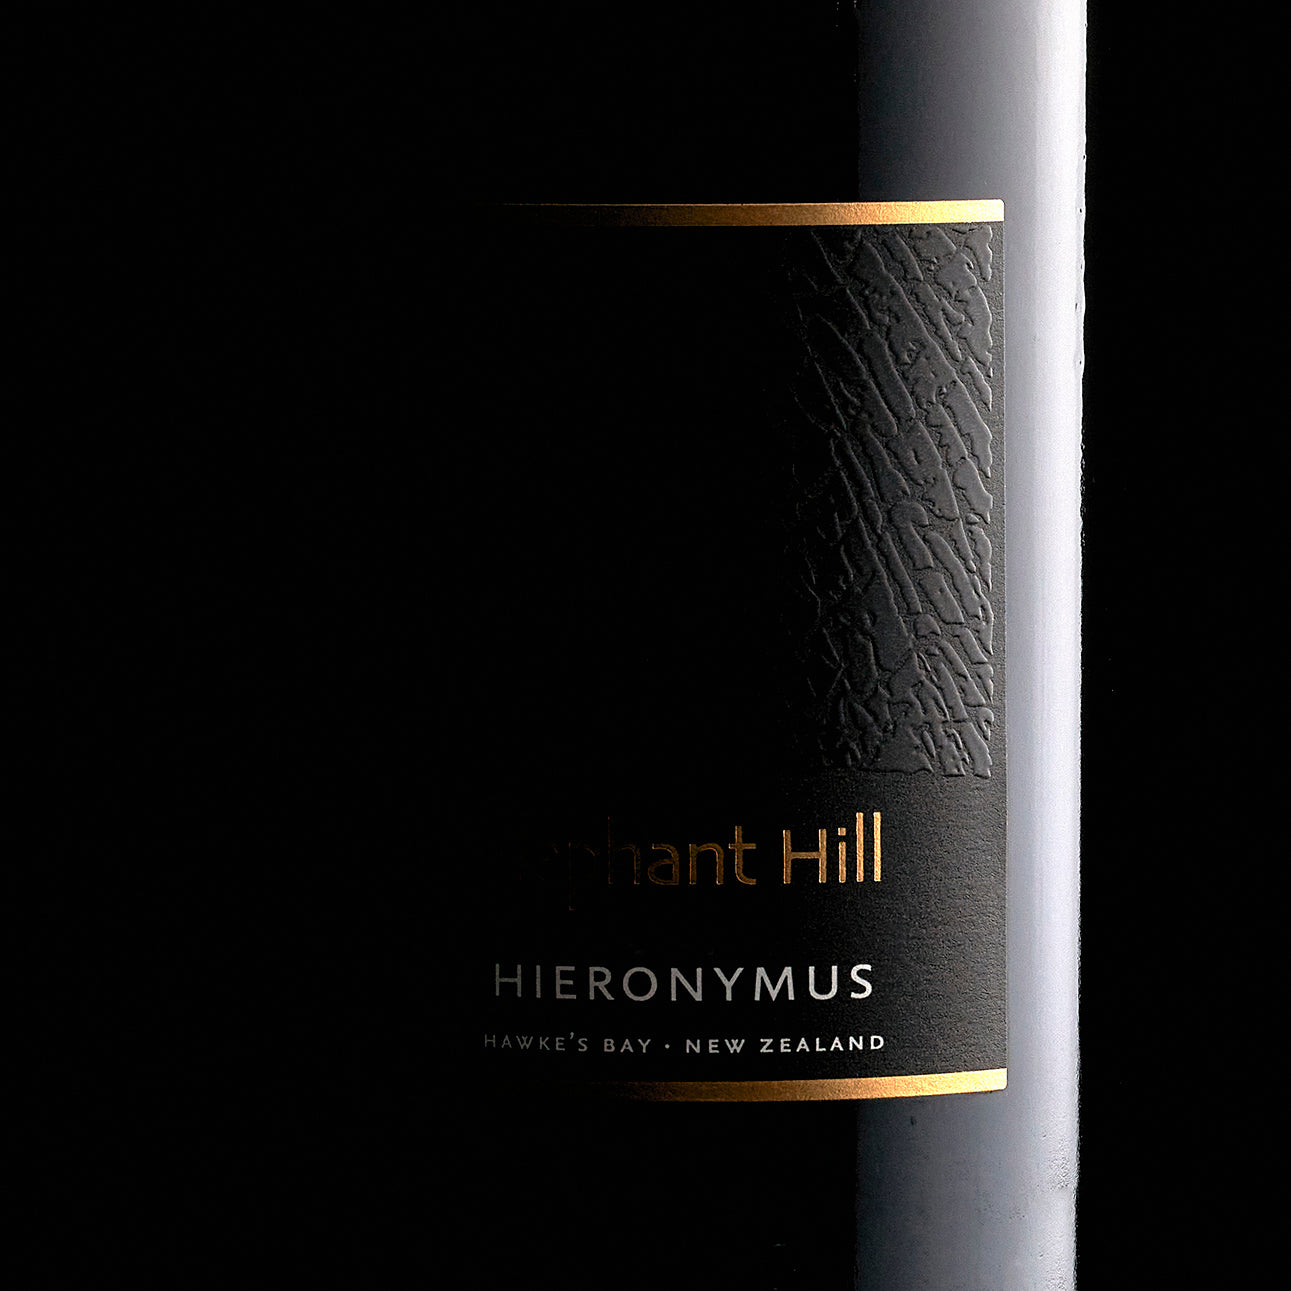 Elephant Hill Hieronymus (Red blend) | Hawke's Bay New Zealand